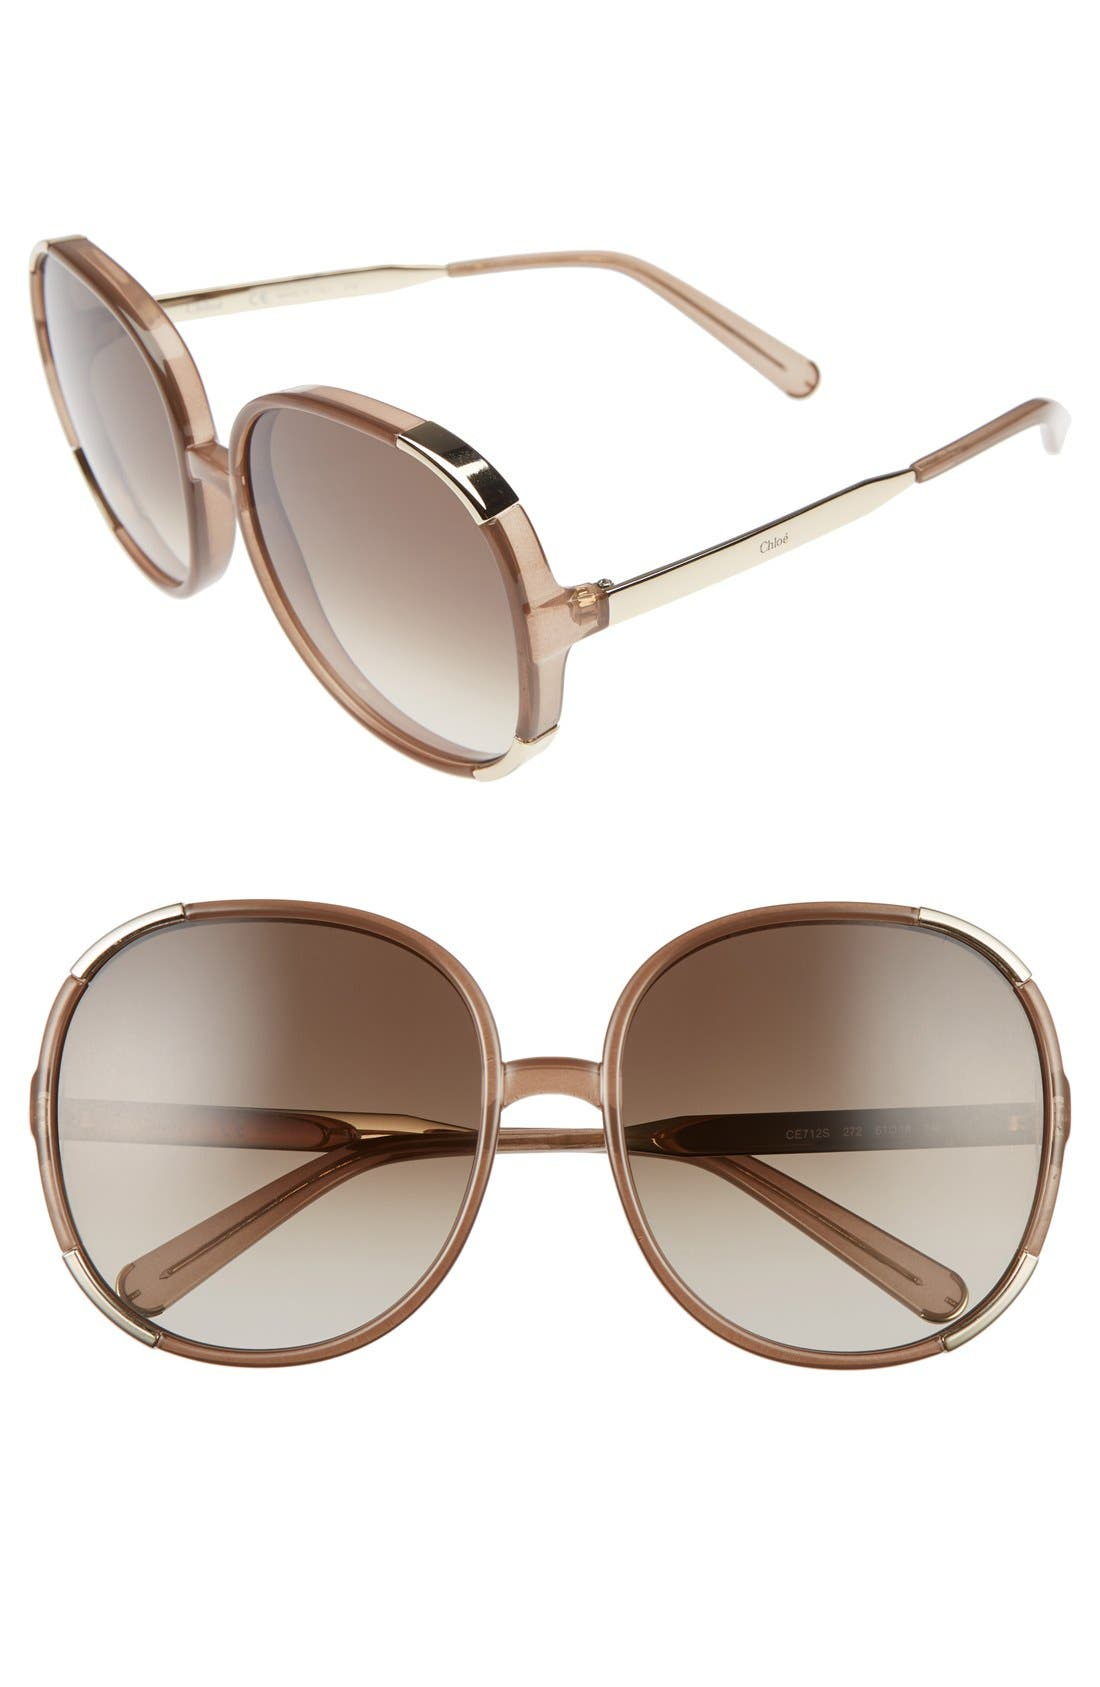 Myrte 61mm Sunglasses,                         Main,                         color, Turtledove